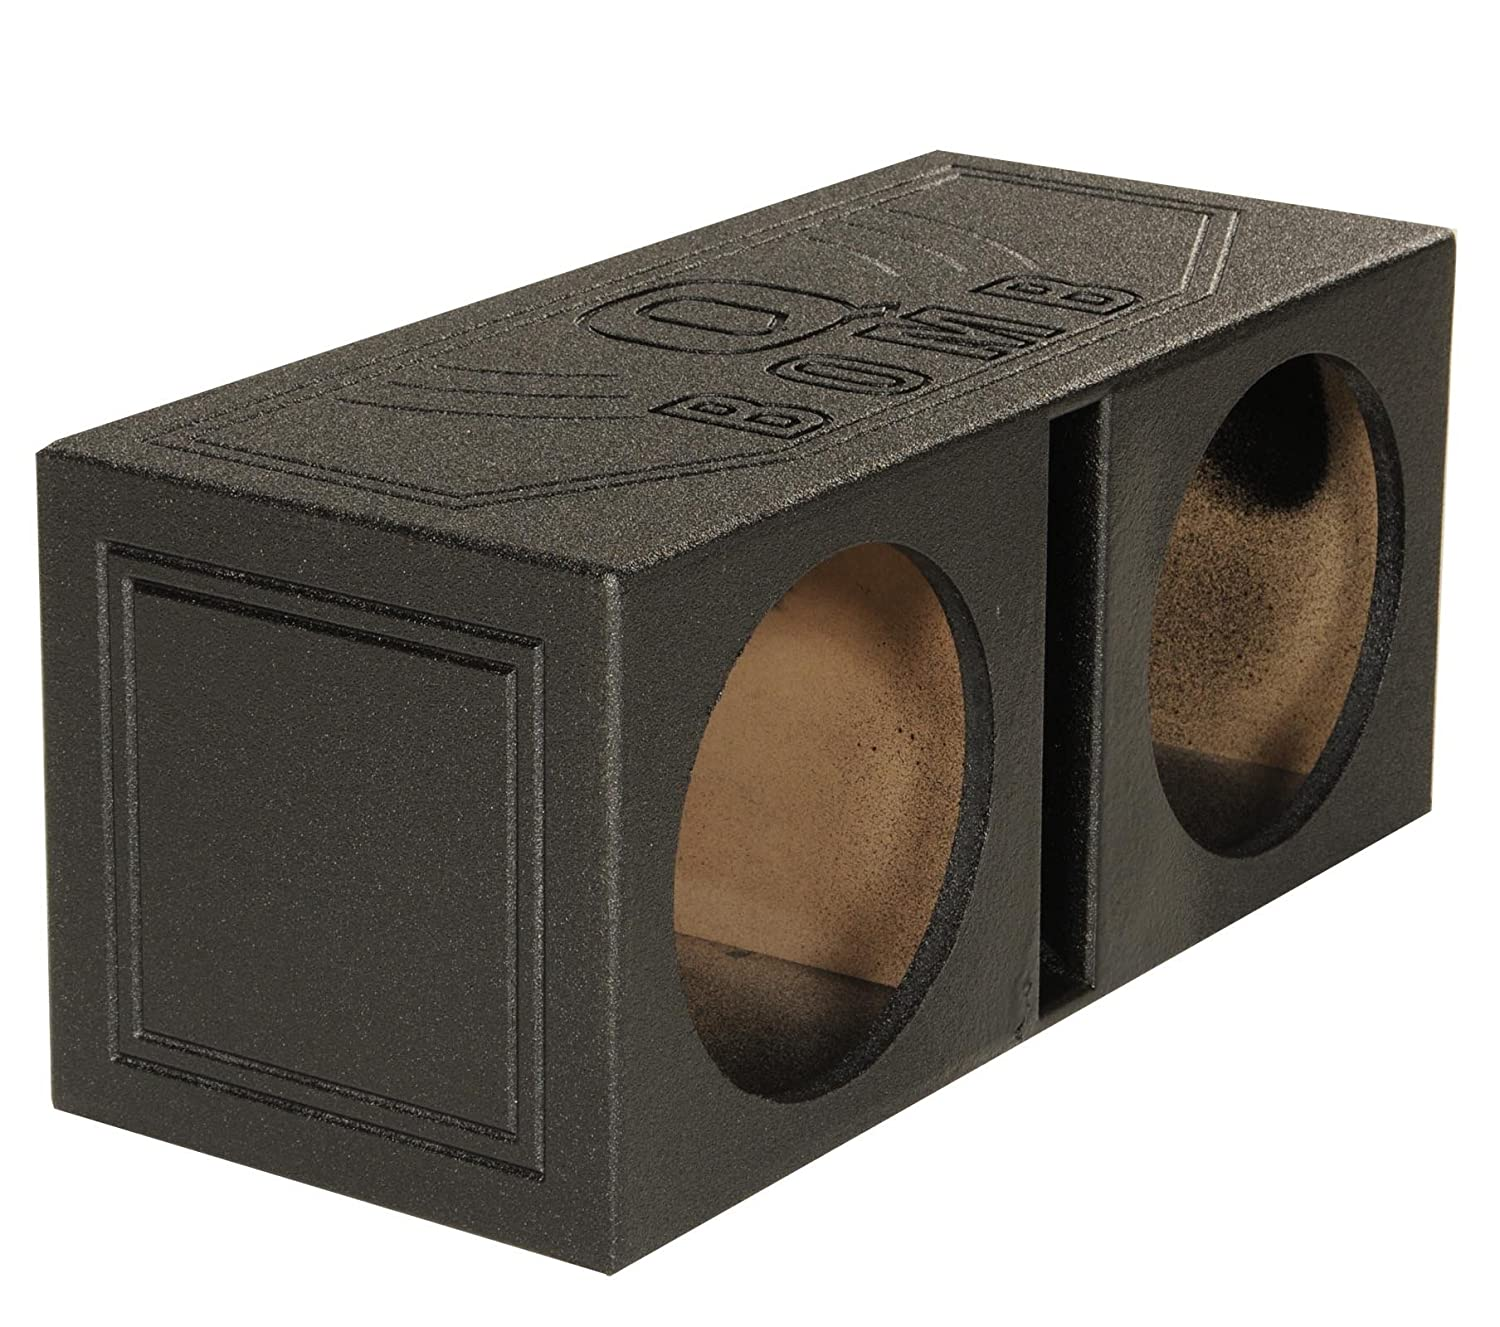 Amazon.com Q Power QBOMB15V Dual 15-Inch Vented Speaker Box from High Grade MDF Wood with Durable Bed Liner Spray Car Electronics  sc 1 st  Amazon.com & Amazon.com: Q Power QBOMB15V Dual 15-Inch Vented Speaker Box from ... Aboutintivar.Com